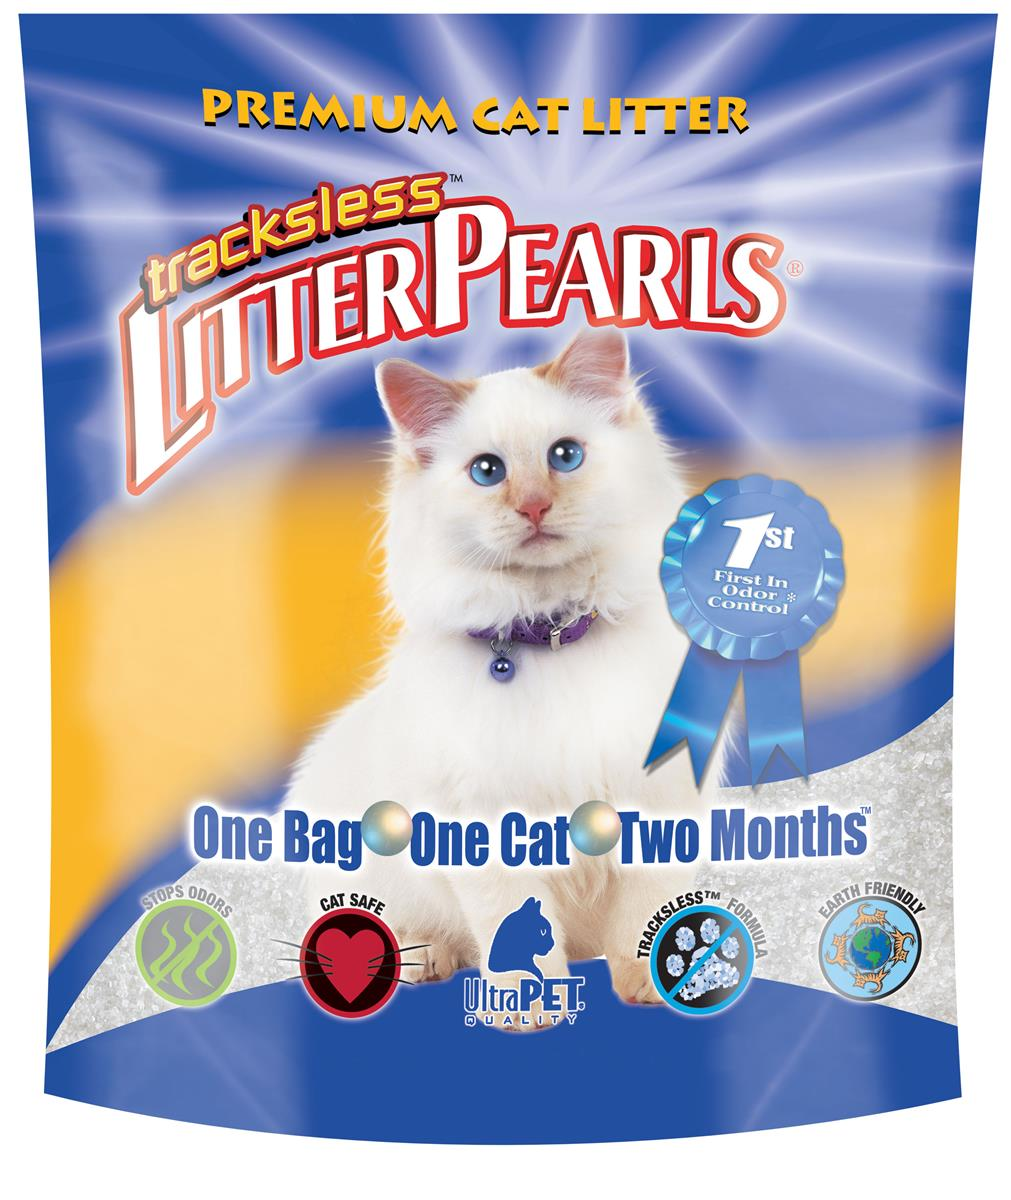 Litter Pearls Tracks-Less, 4 lbs